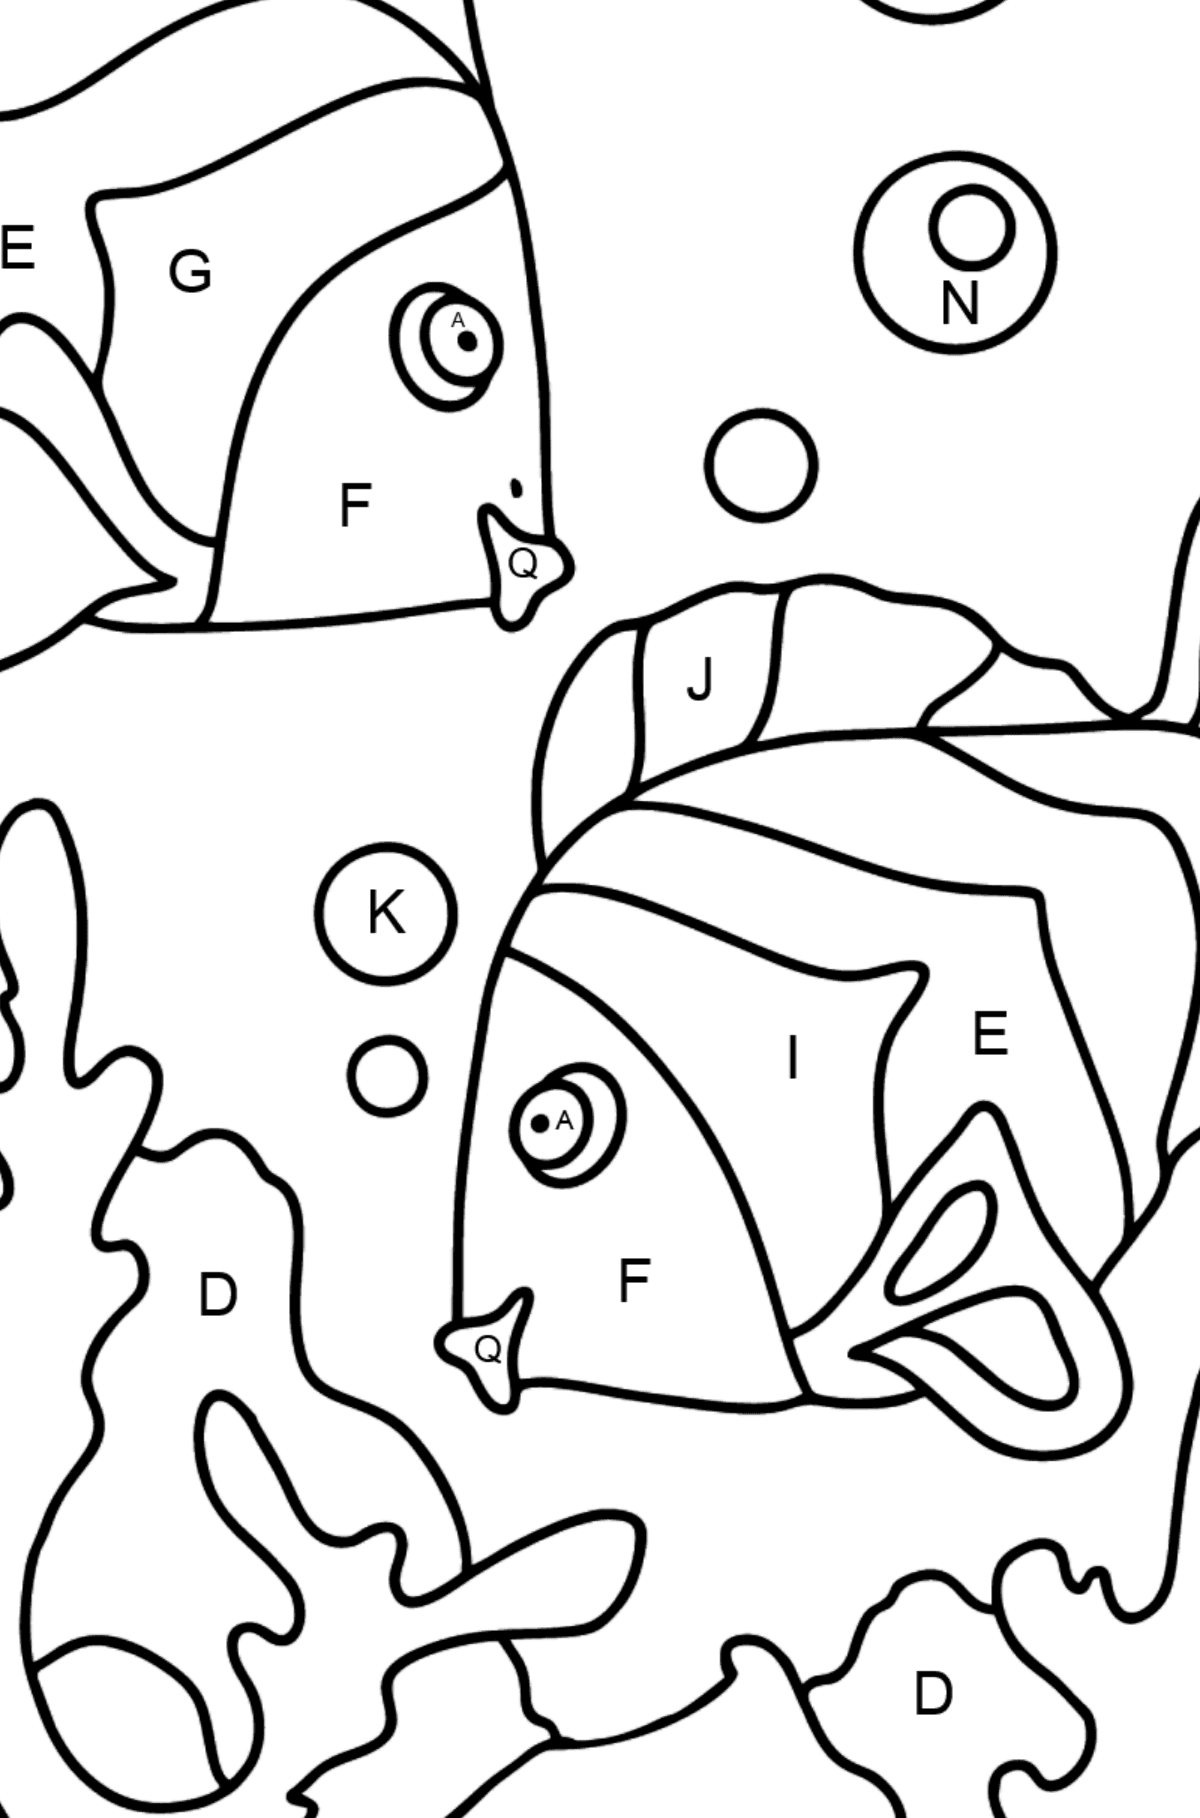 Coloring Page - Fish are Swimming Together - Coloring by Letters for Kids